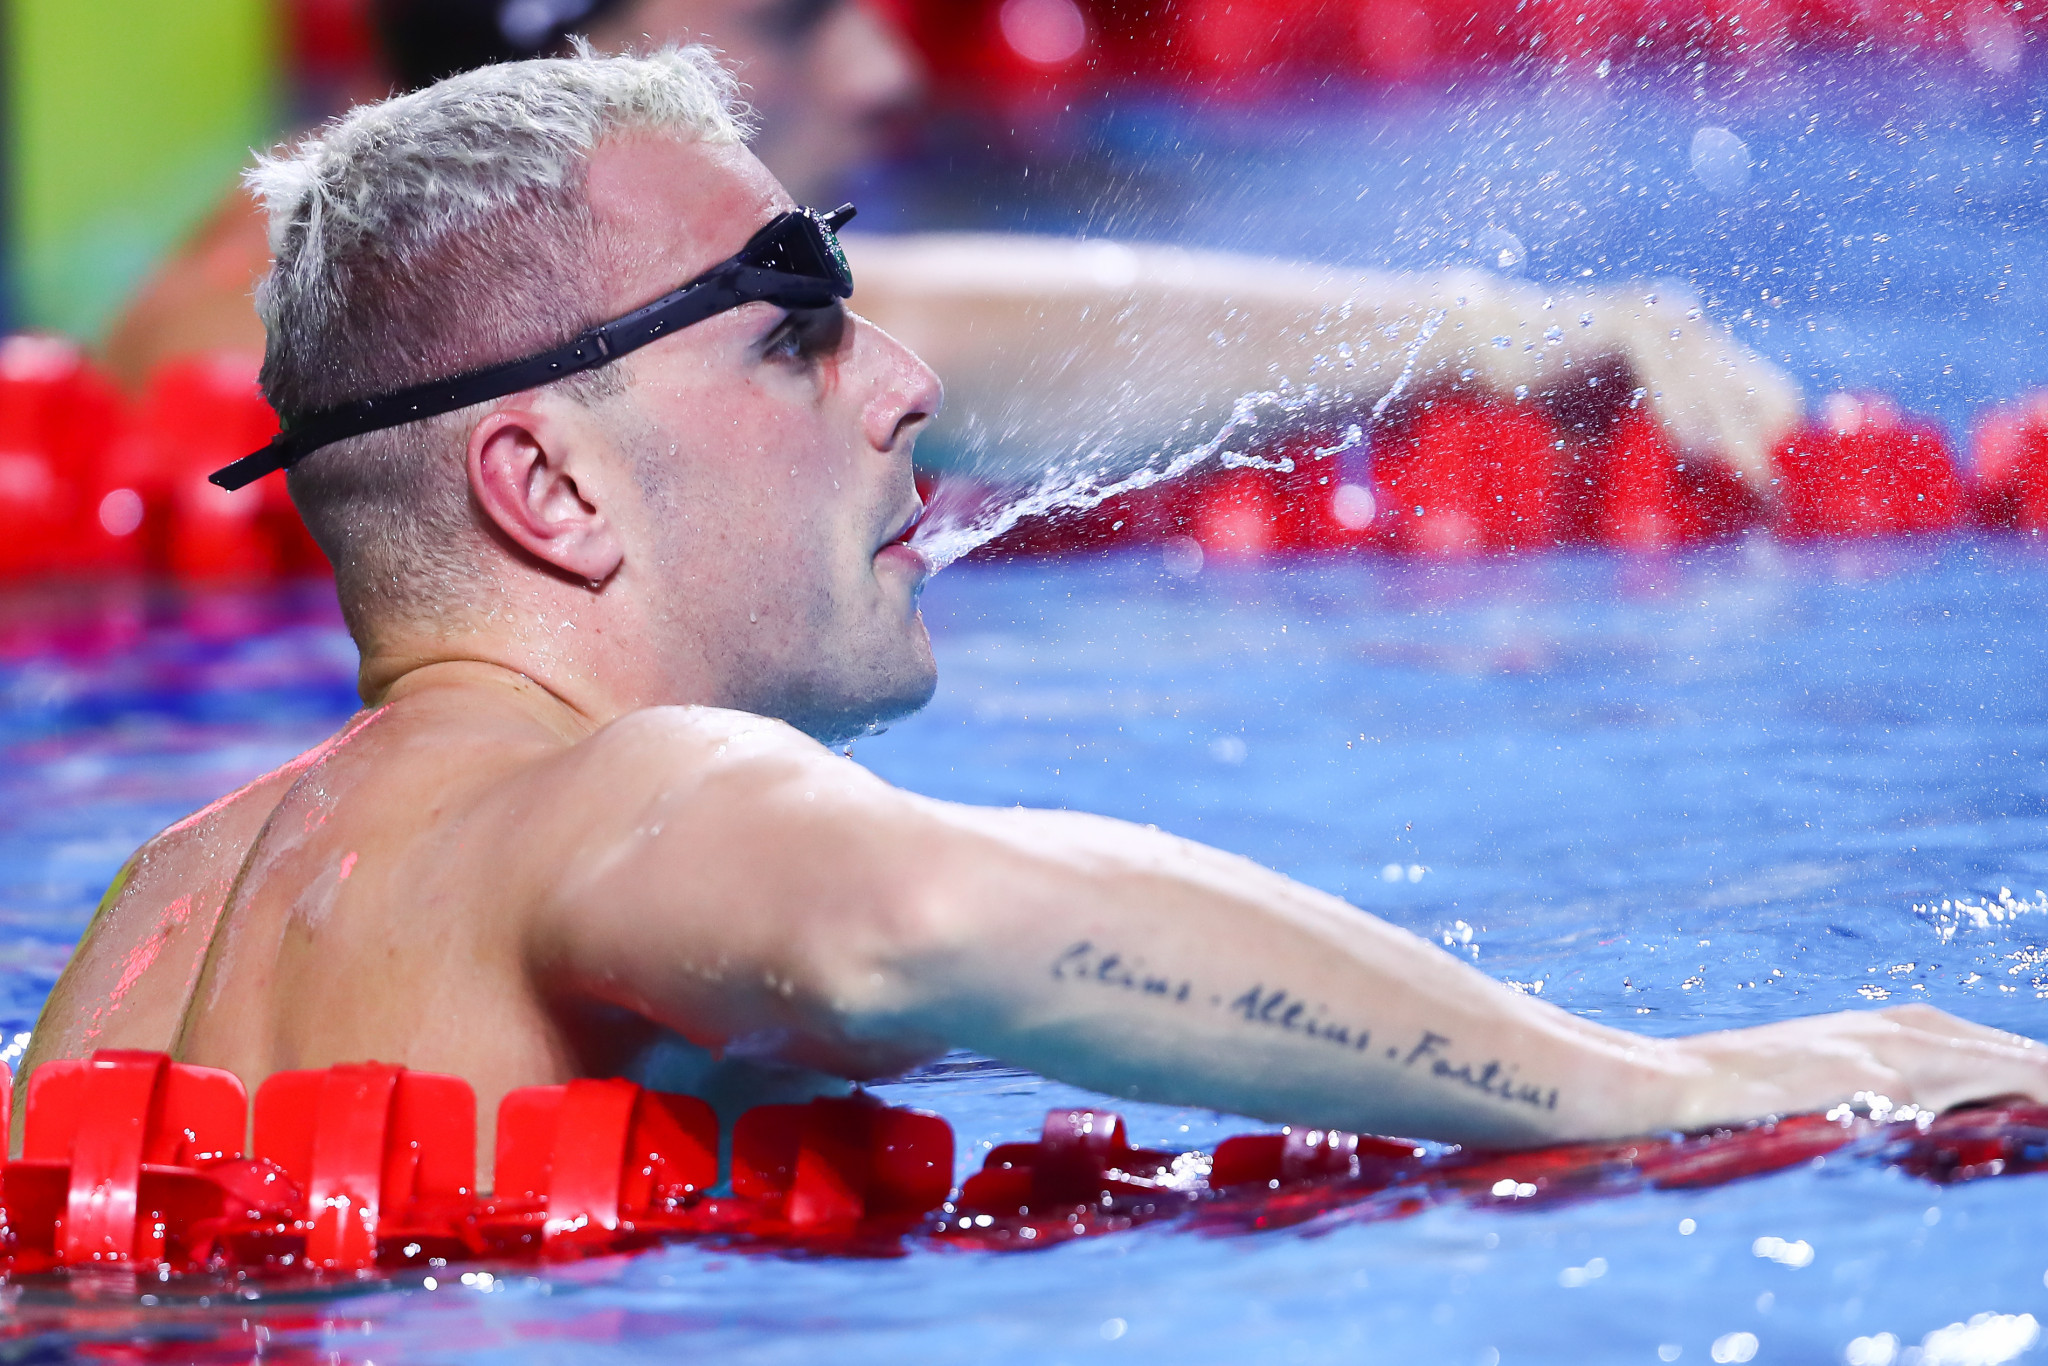 Chalmers beats Morozov again at Budapest International Swimming Federation World Cup